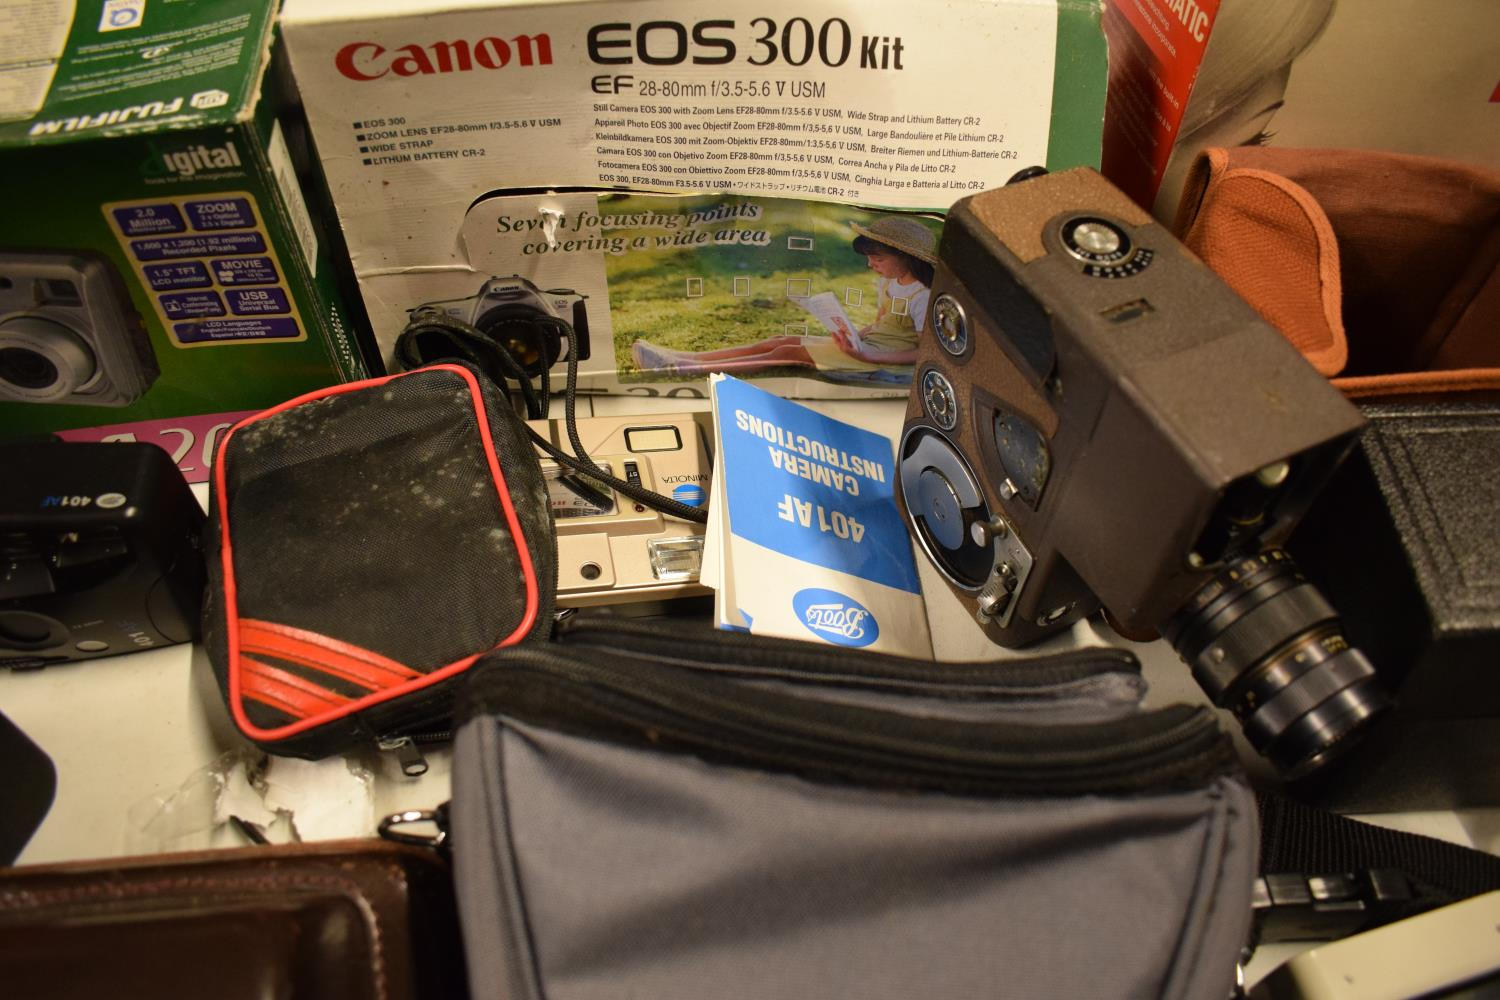 A mixed collection of cameras and accessories to include Kodak, Canon, JVC etc Condition is mixed. - Image 6 of 7